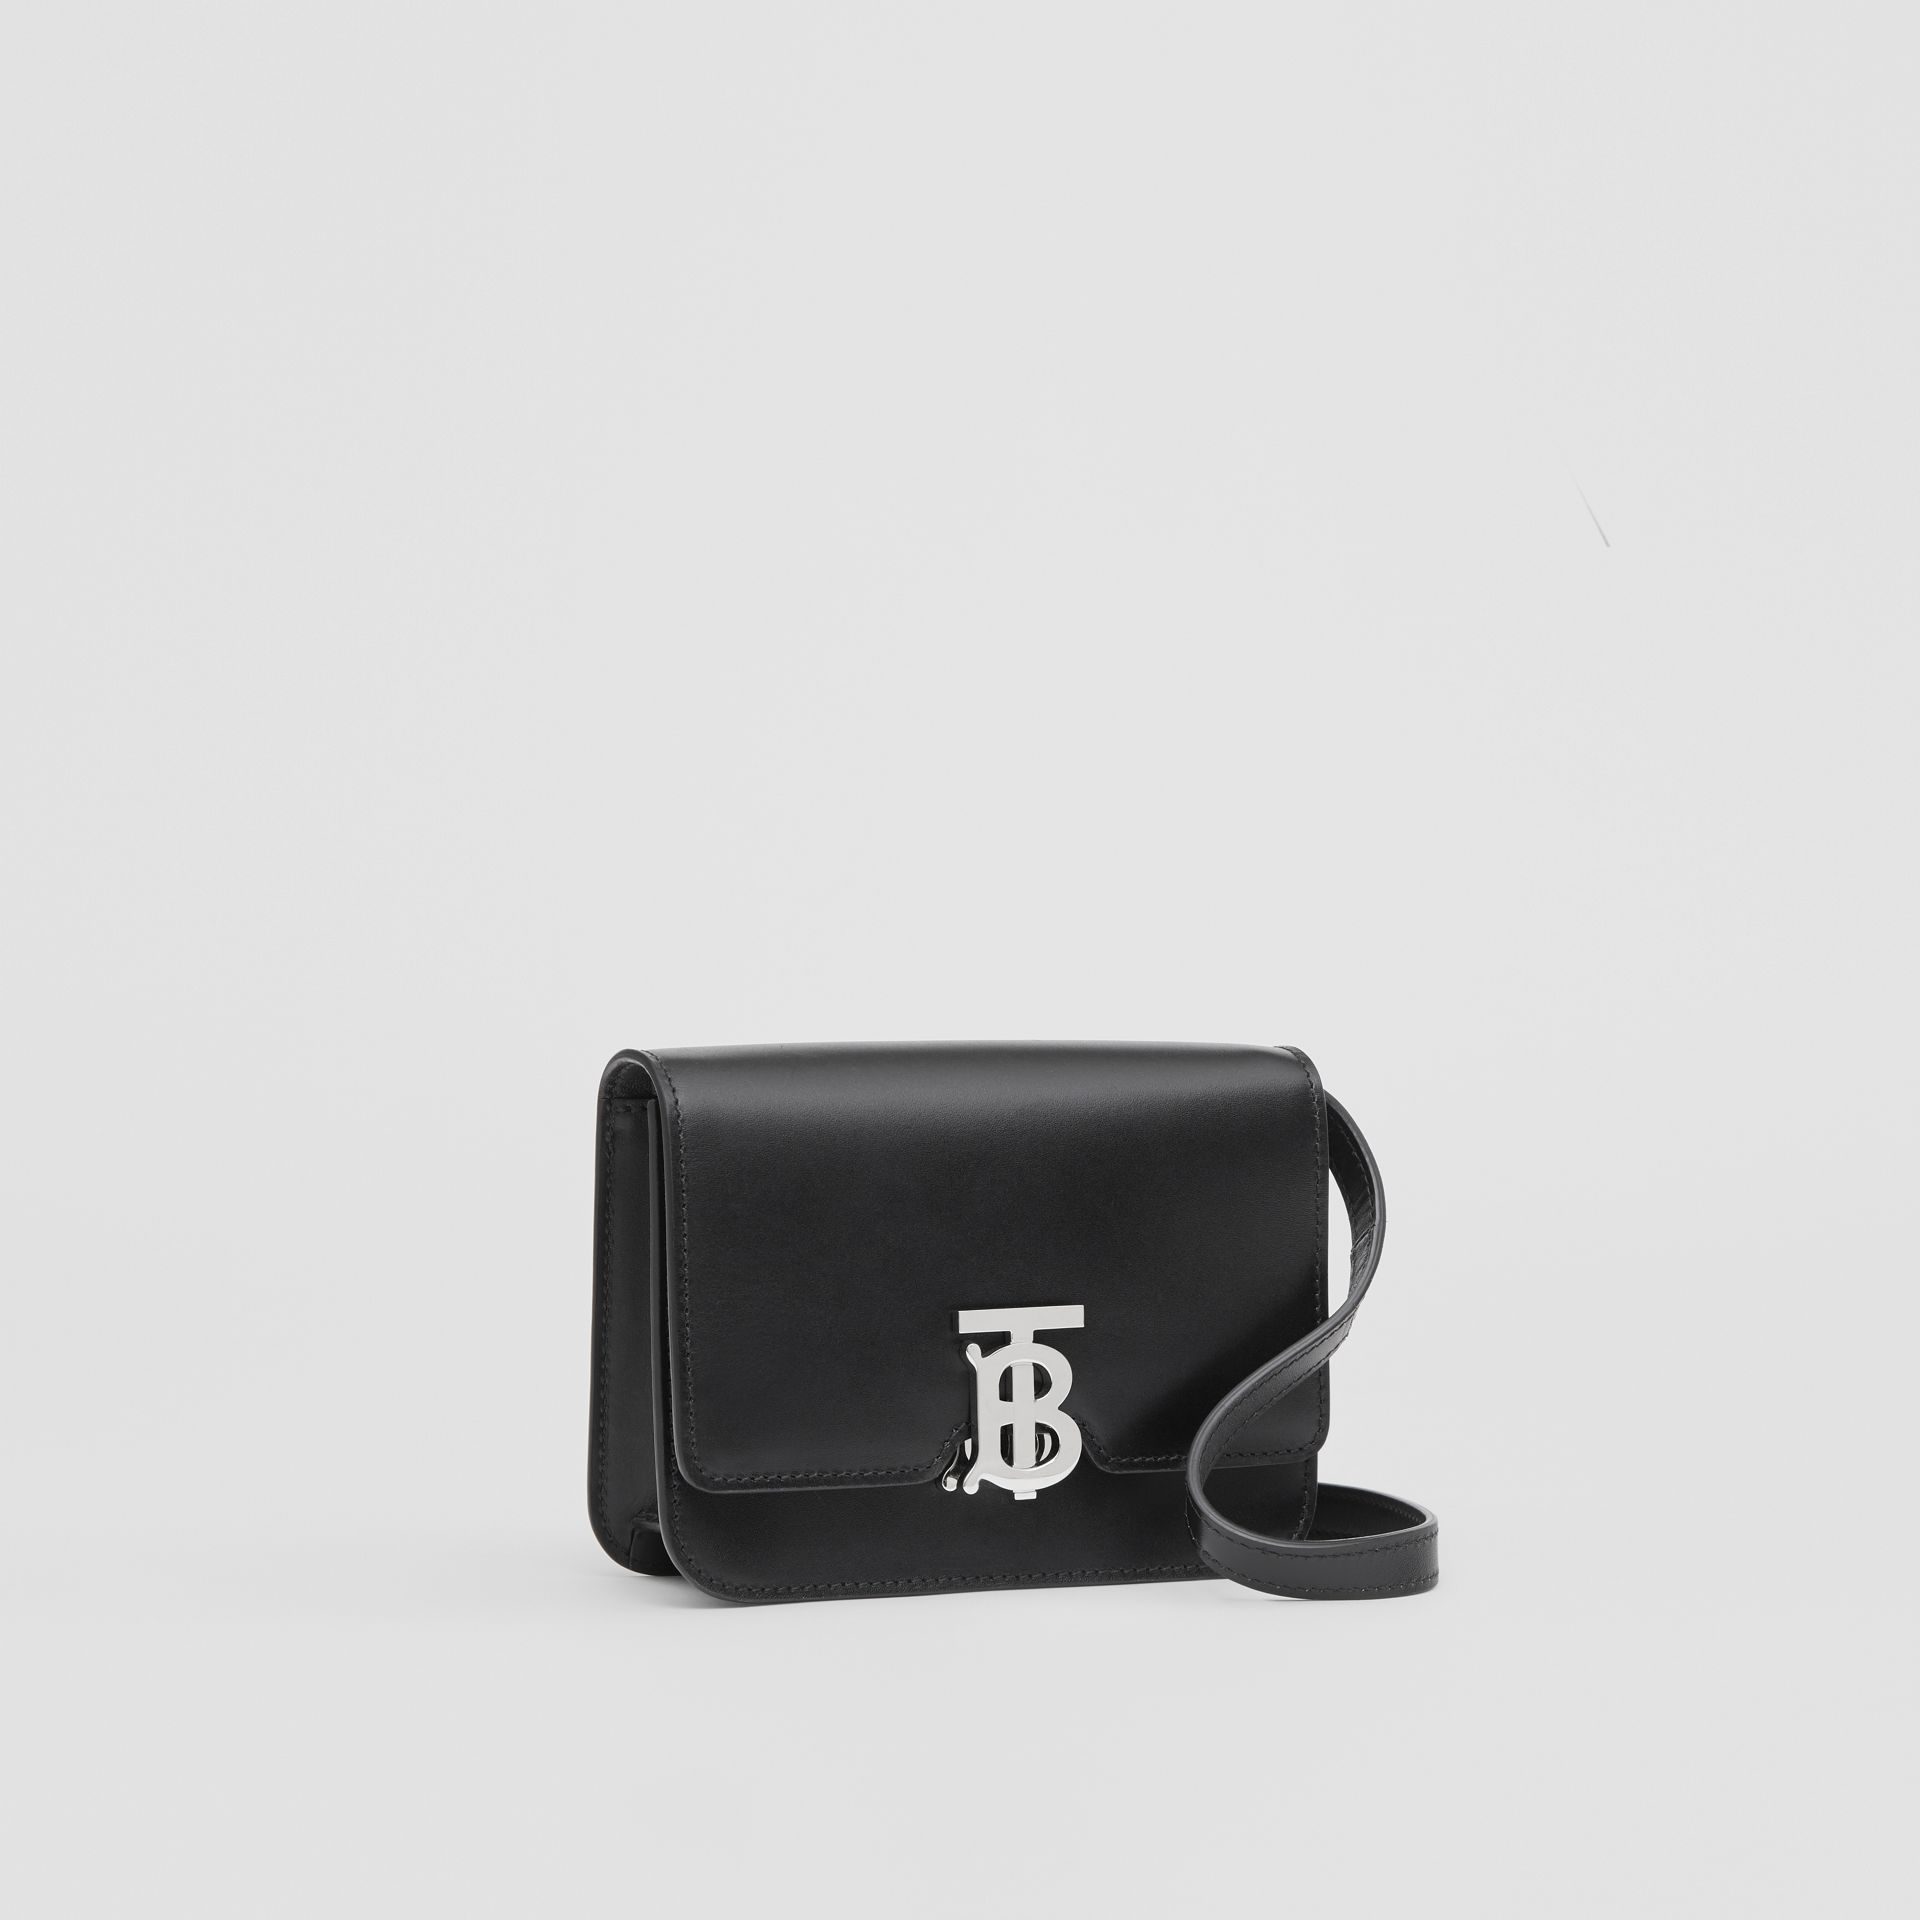 Mini Leather TB Bag in Black - Women | Burberry - gallery image 6